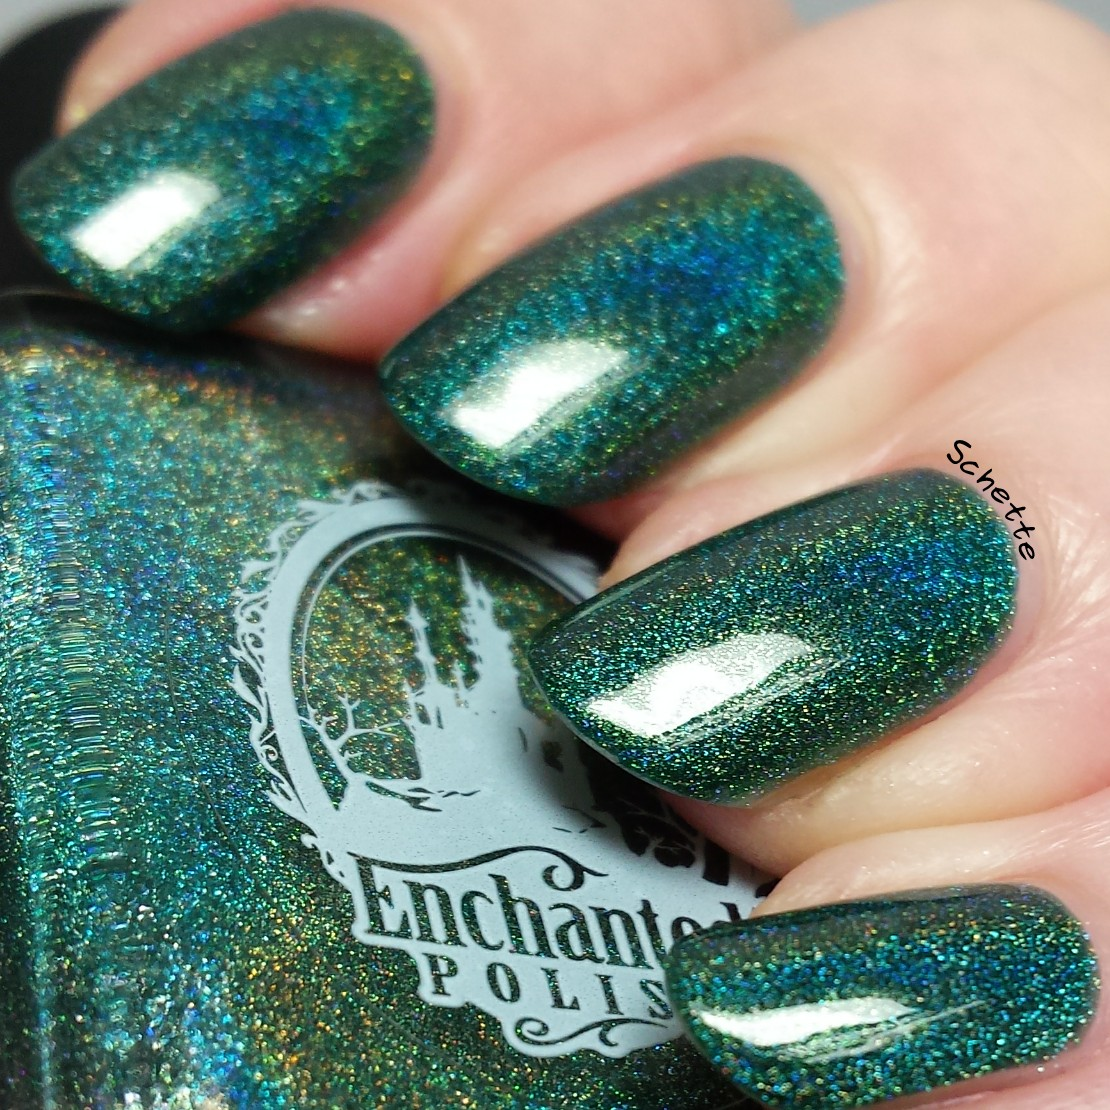 Enchanted Polish : December 2015